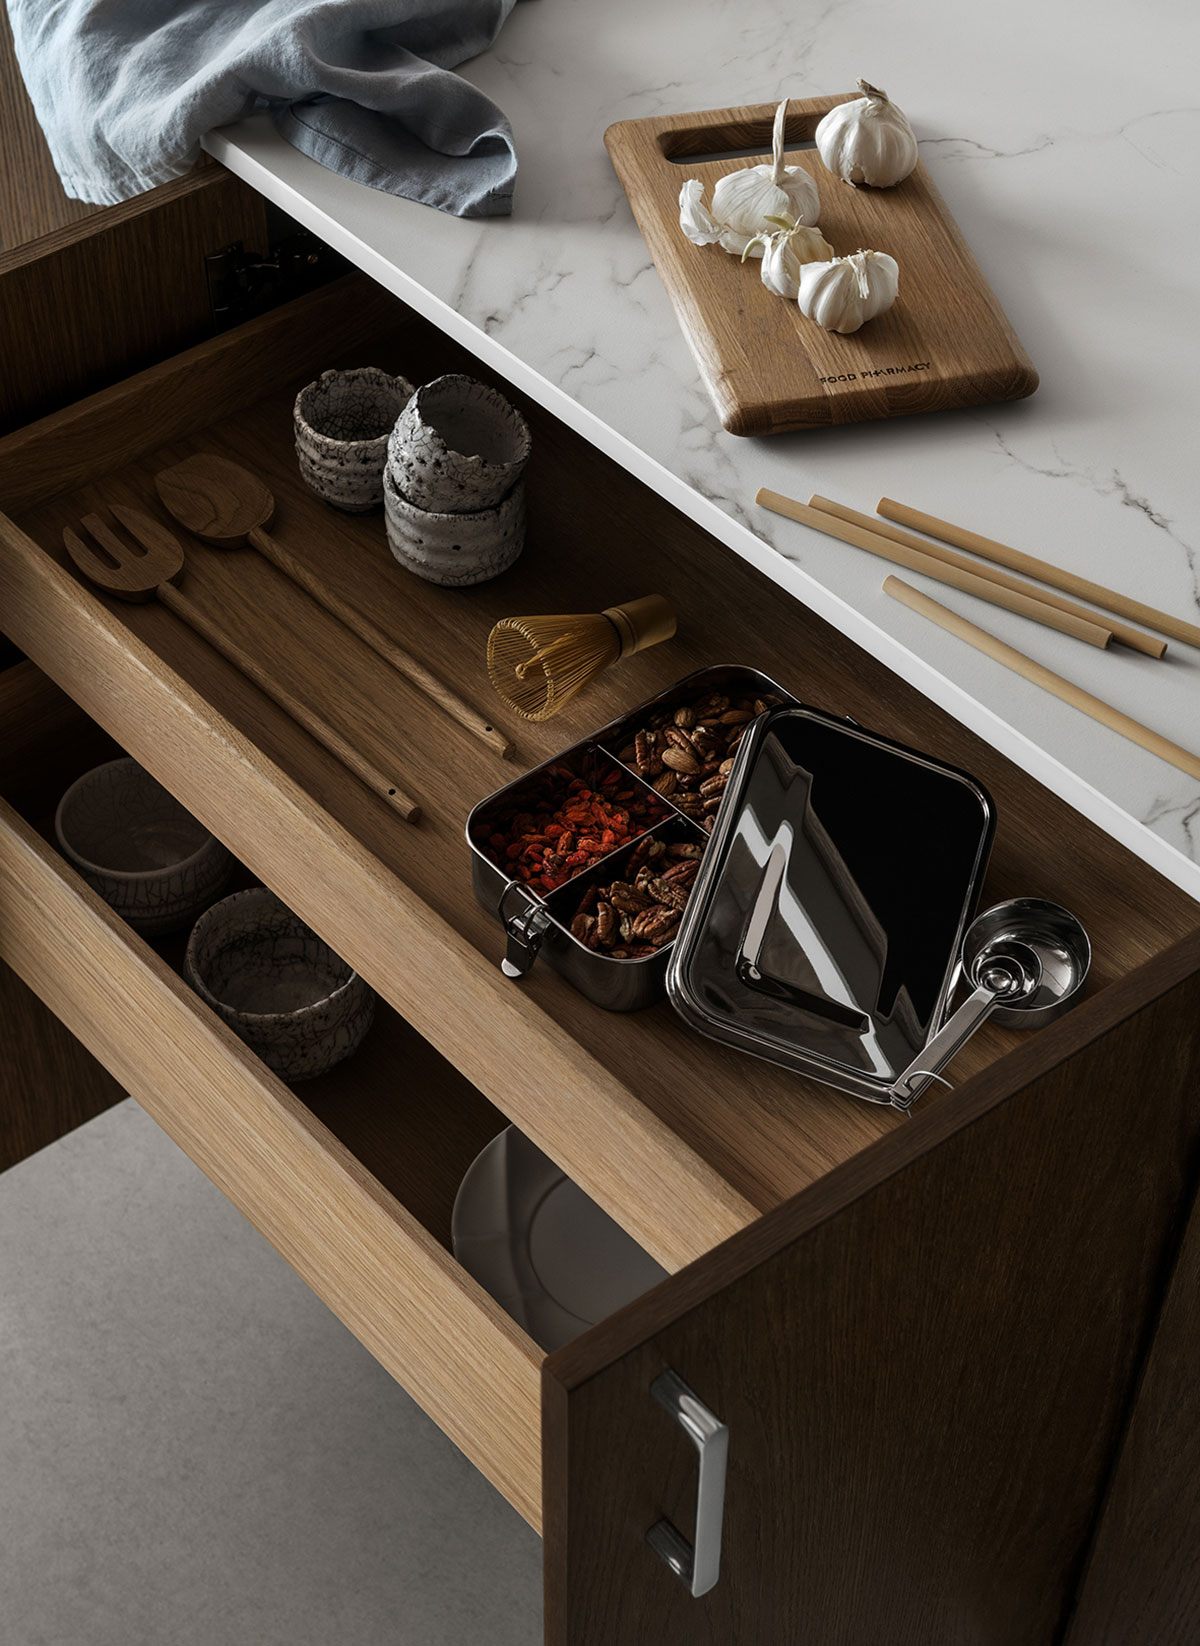 Food pharmacy recipe for a solid oak kitchen